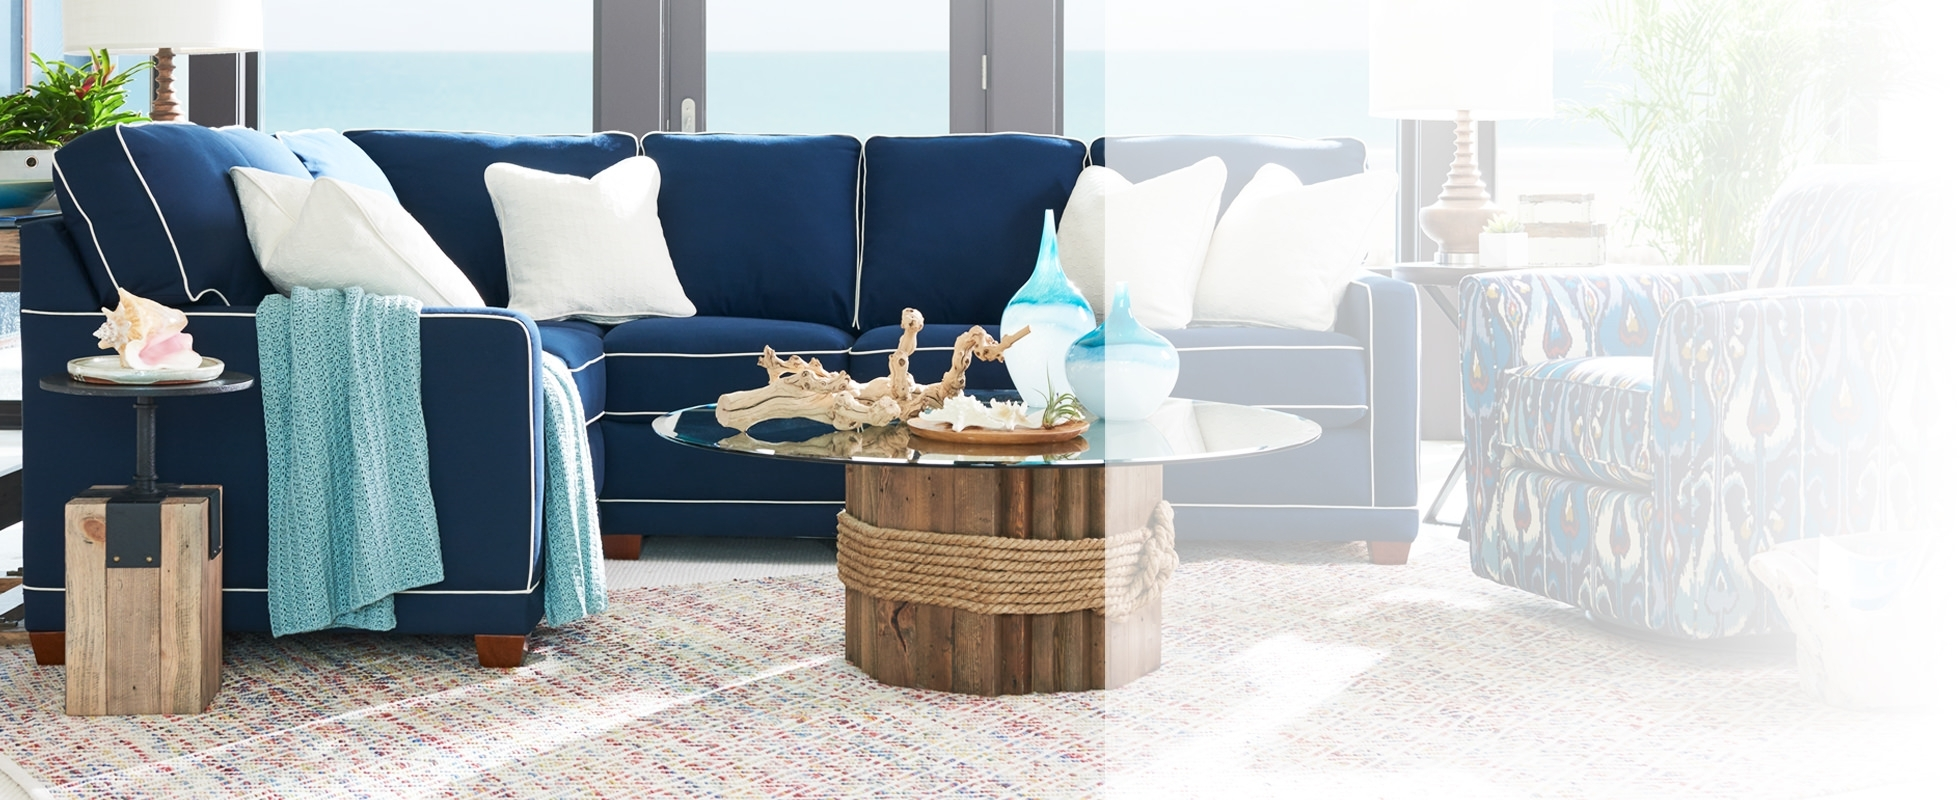 Sectional Sofas & Sectional Couches | La-Z-Boy with Sectional Sofas at Lazy Boy (Image 14 of 15)